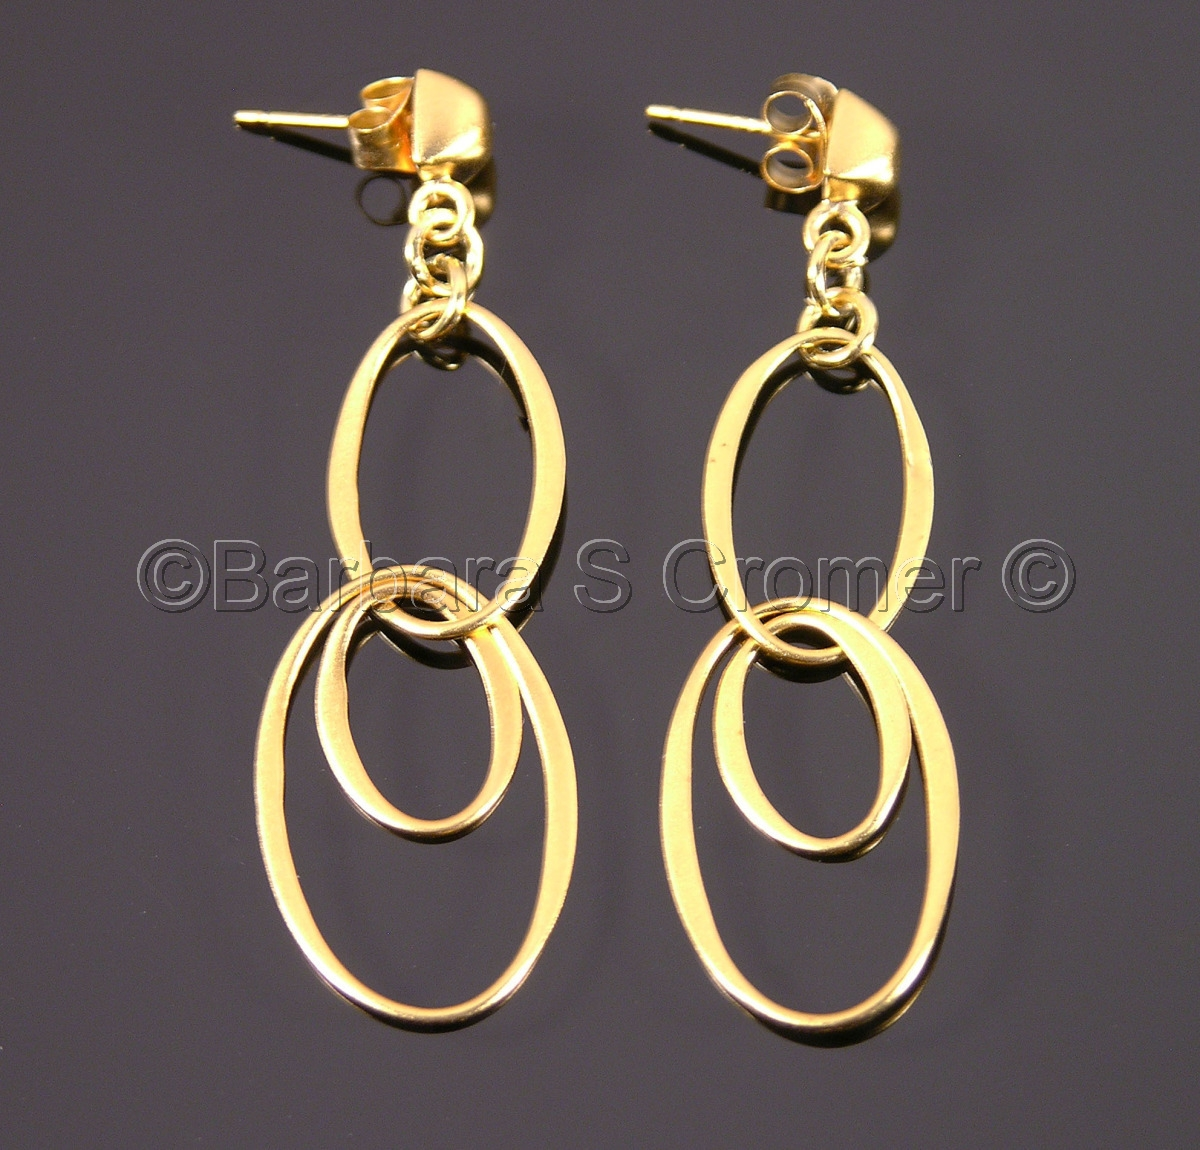 Vermeil oval scribble chain earrings (large view)